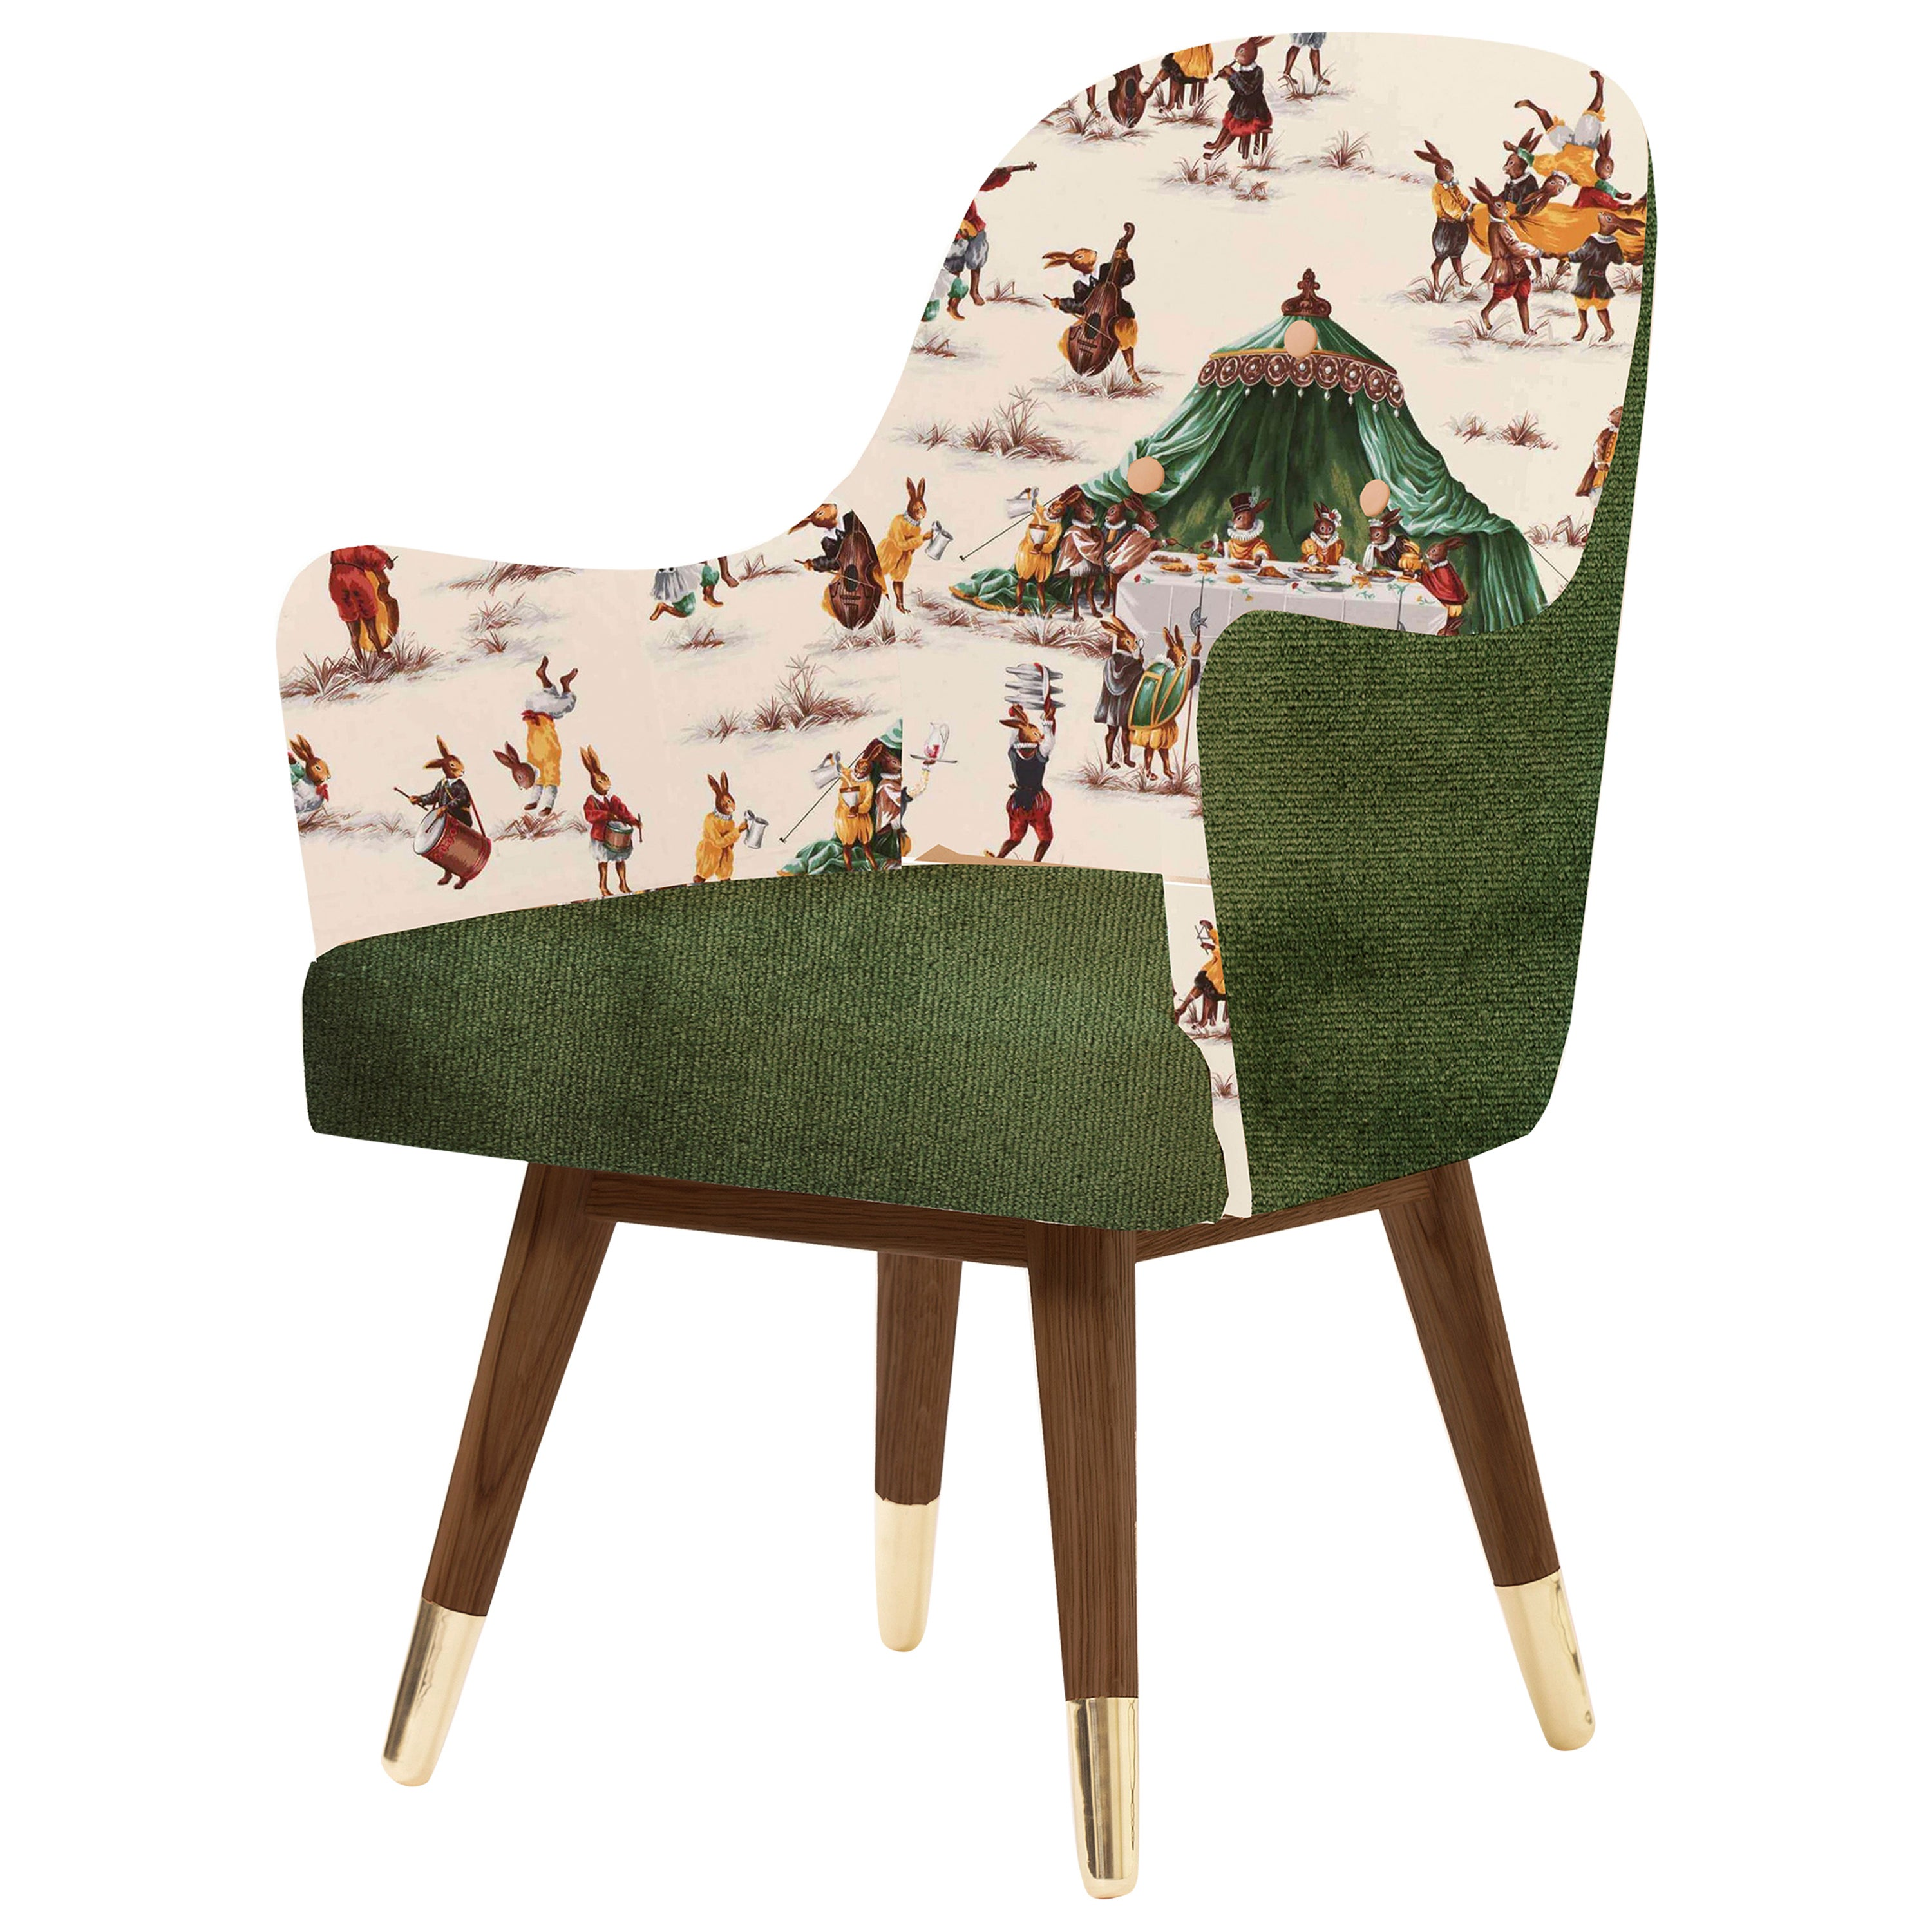 Contemporary Dandy Chair with Green Velvet, Walnut and Brass